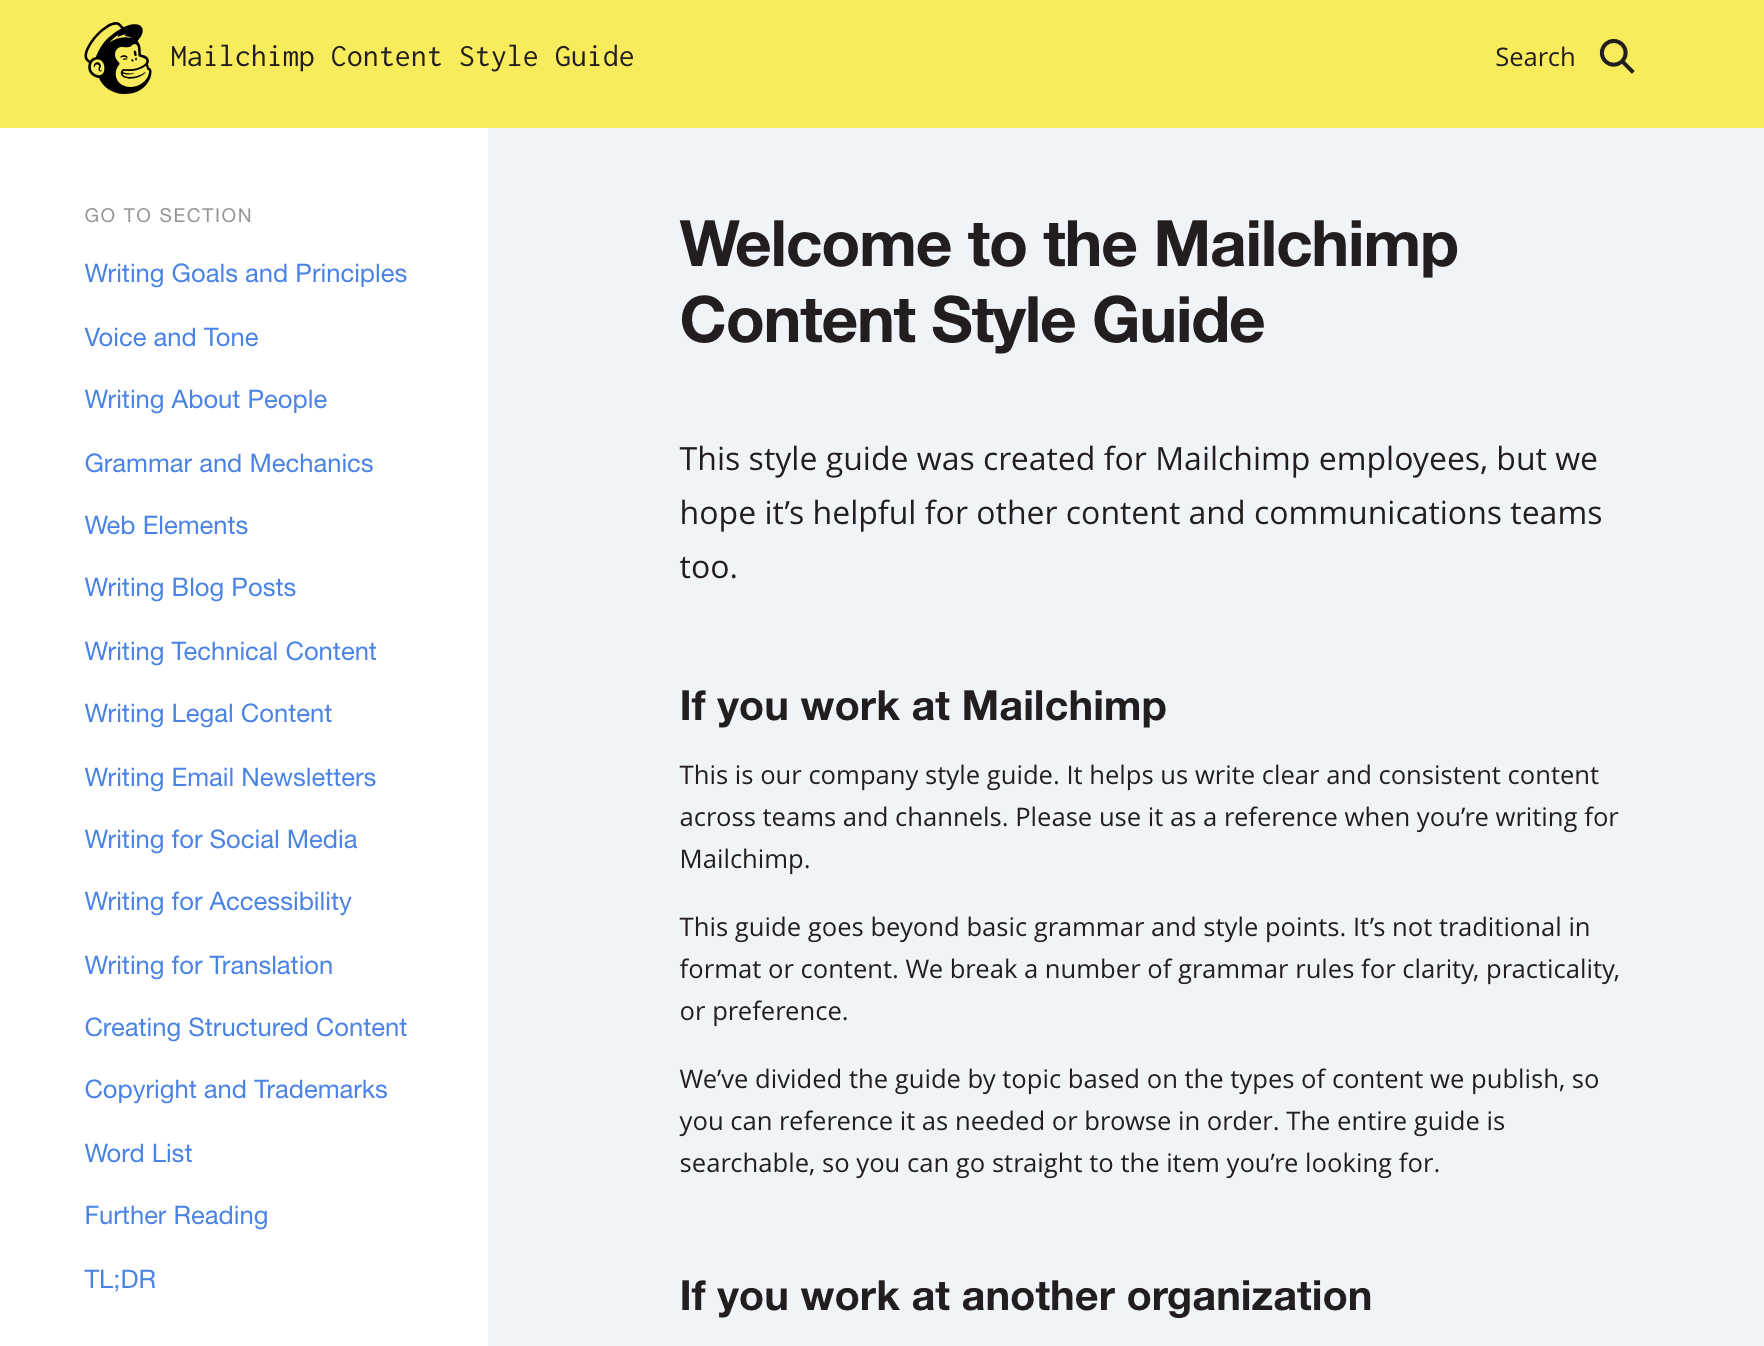 The Macilchimp content style guide homepage